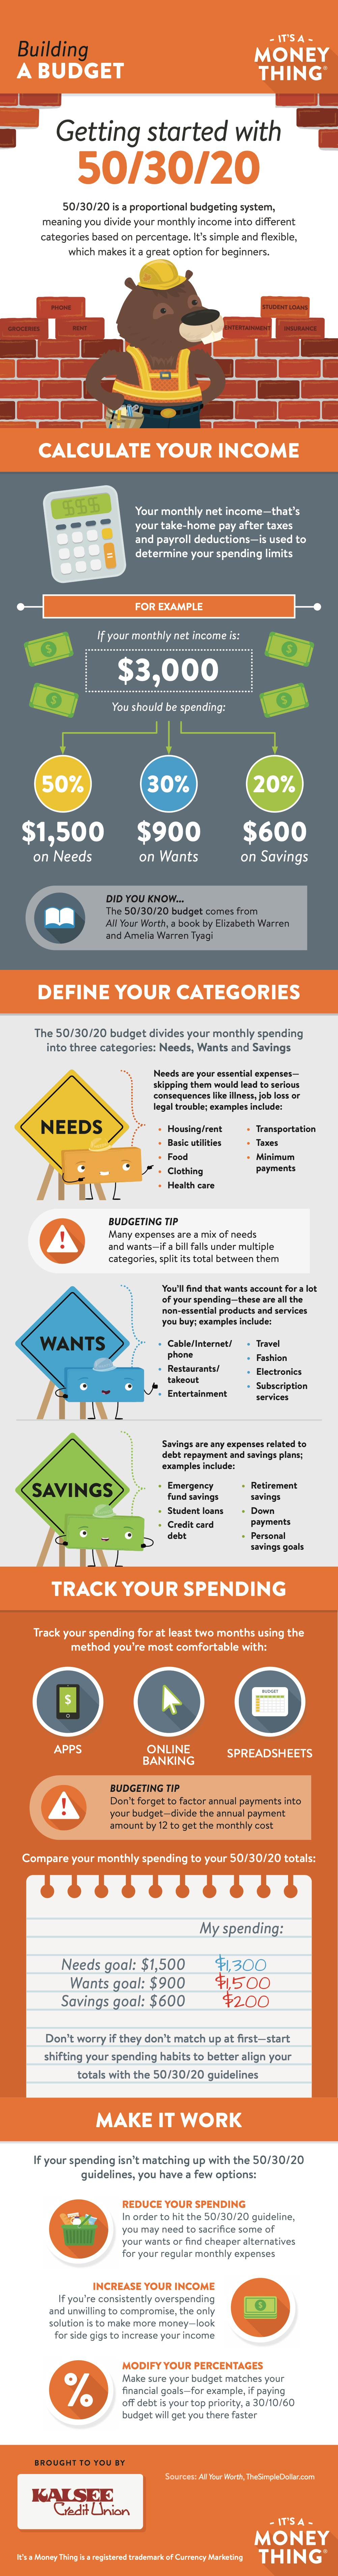 Building a budget infographic, click for transcription